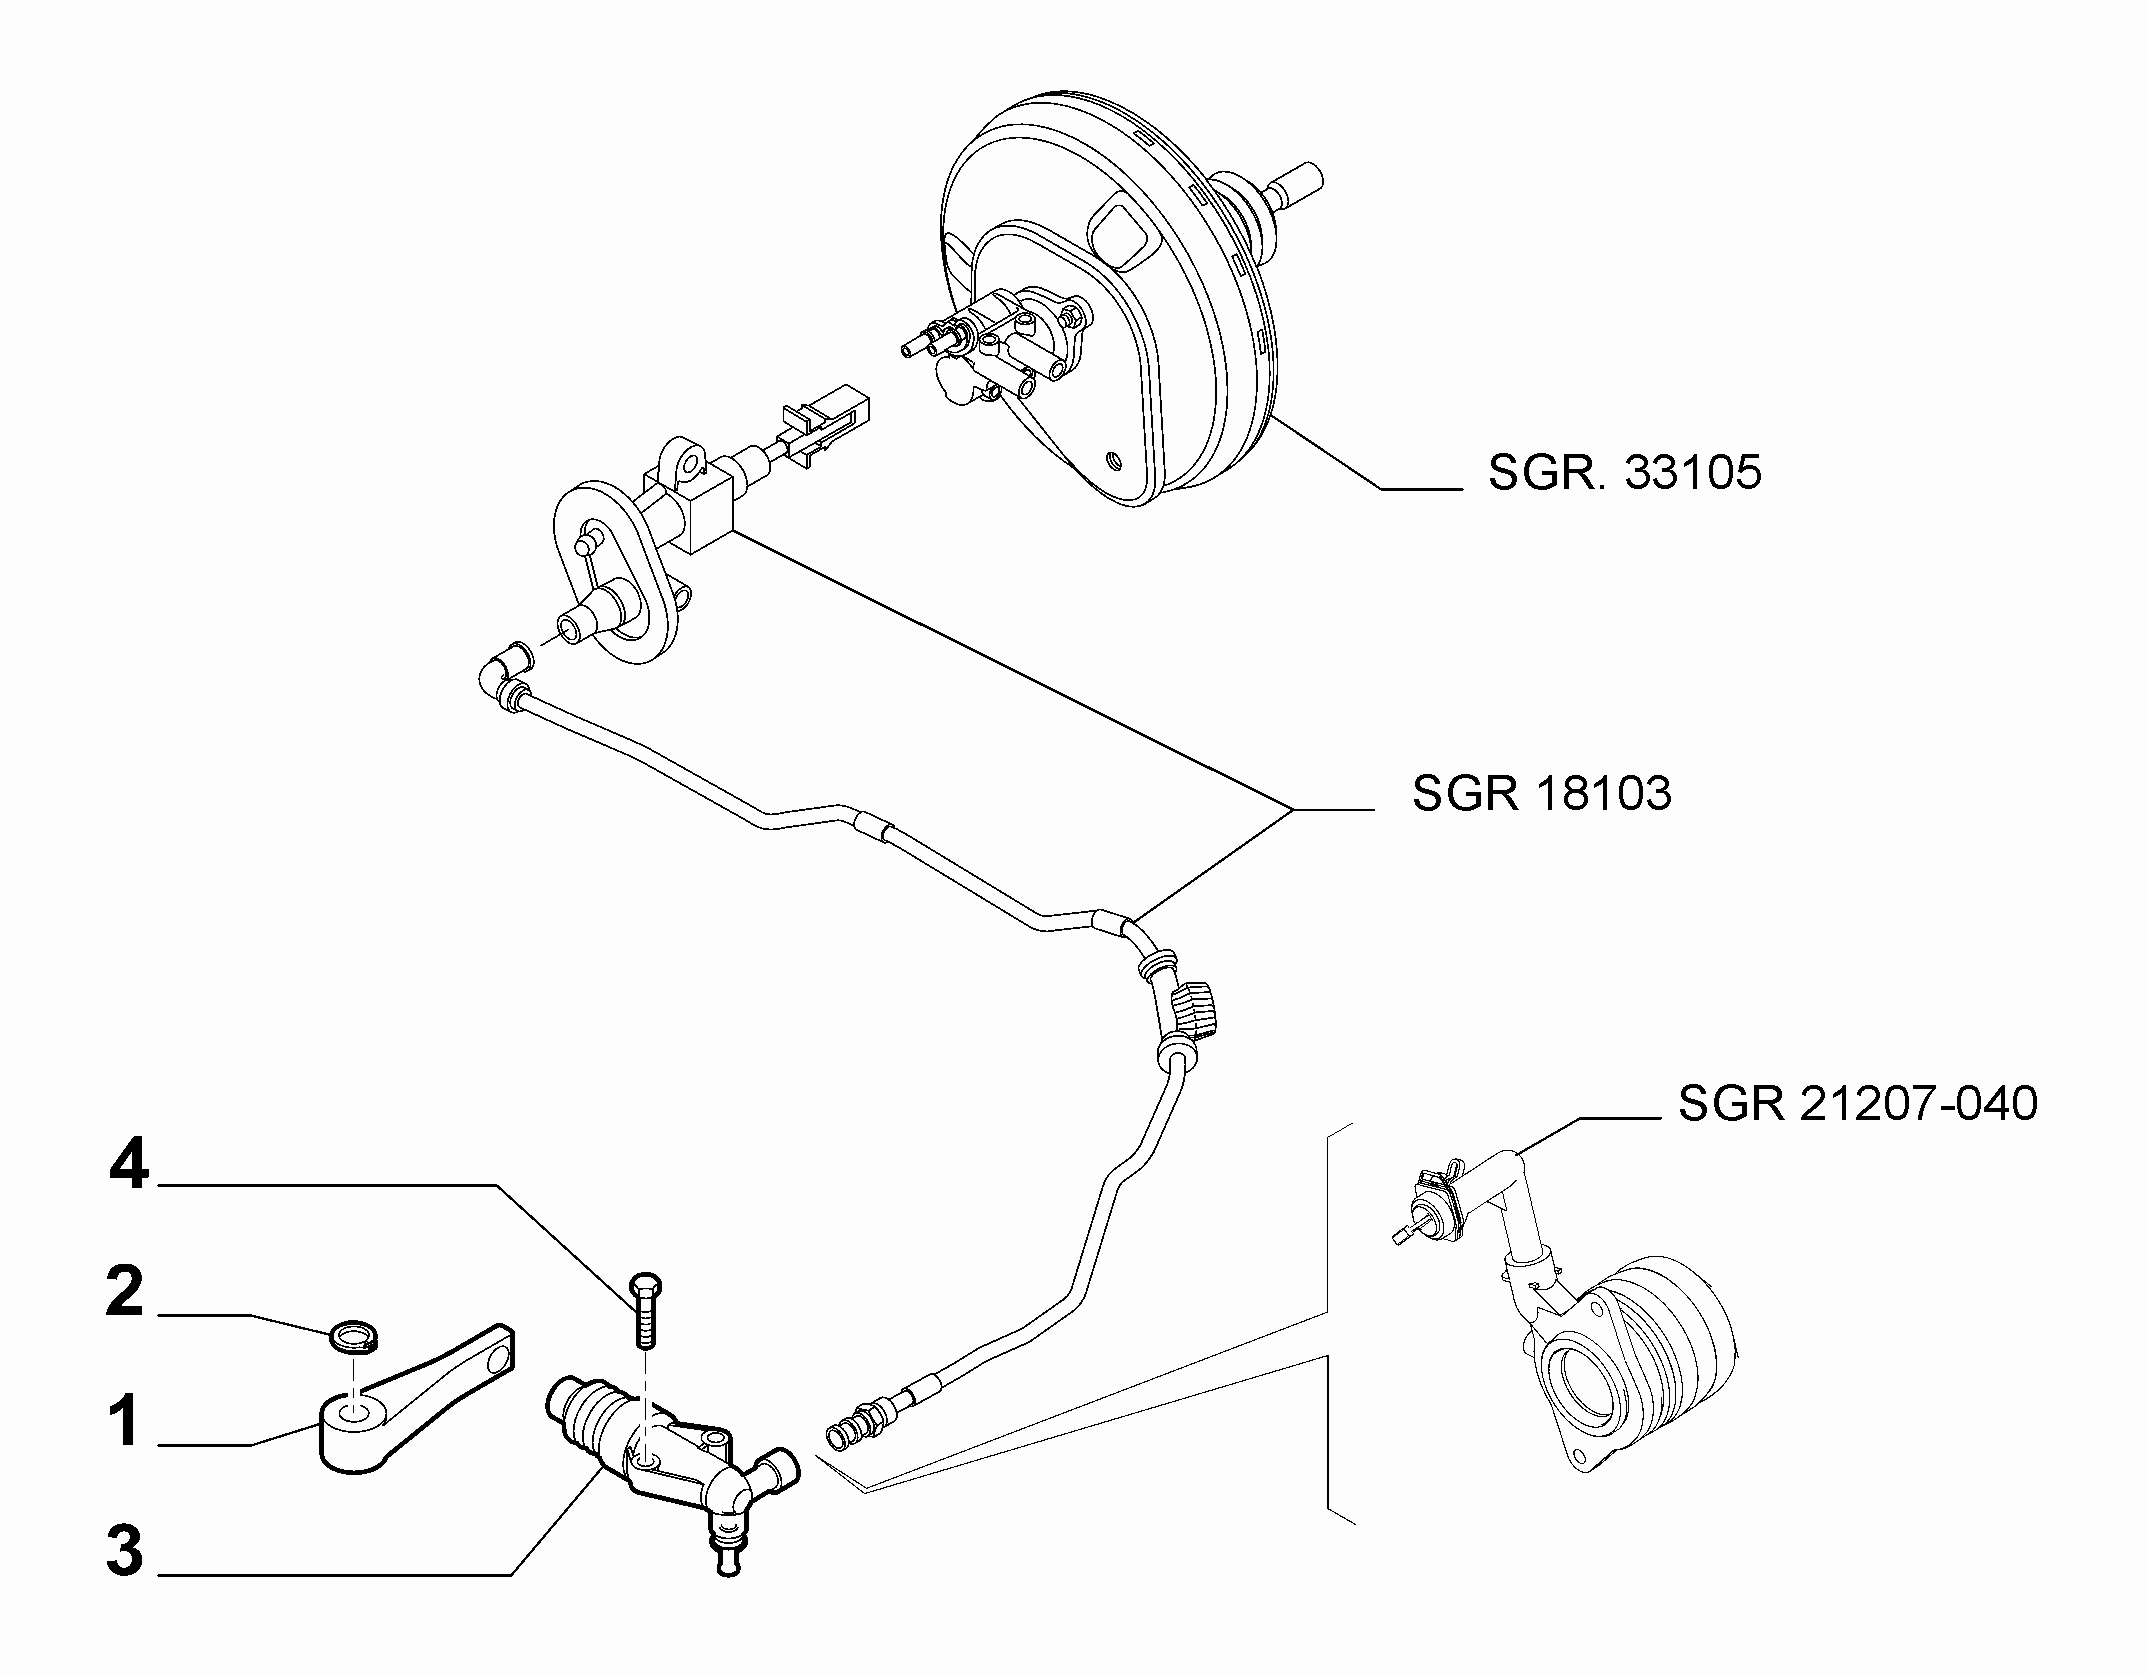 18103-020 CLUTCH LEVER CYLINDER AND HOSE